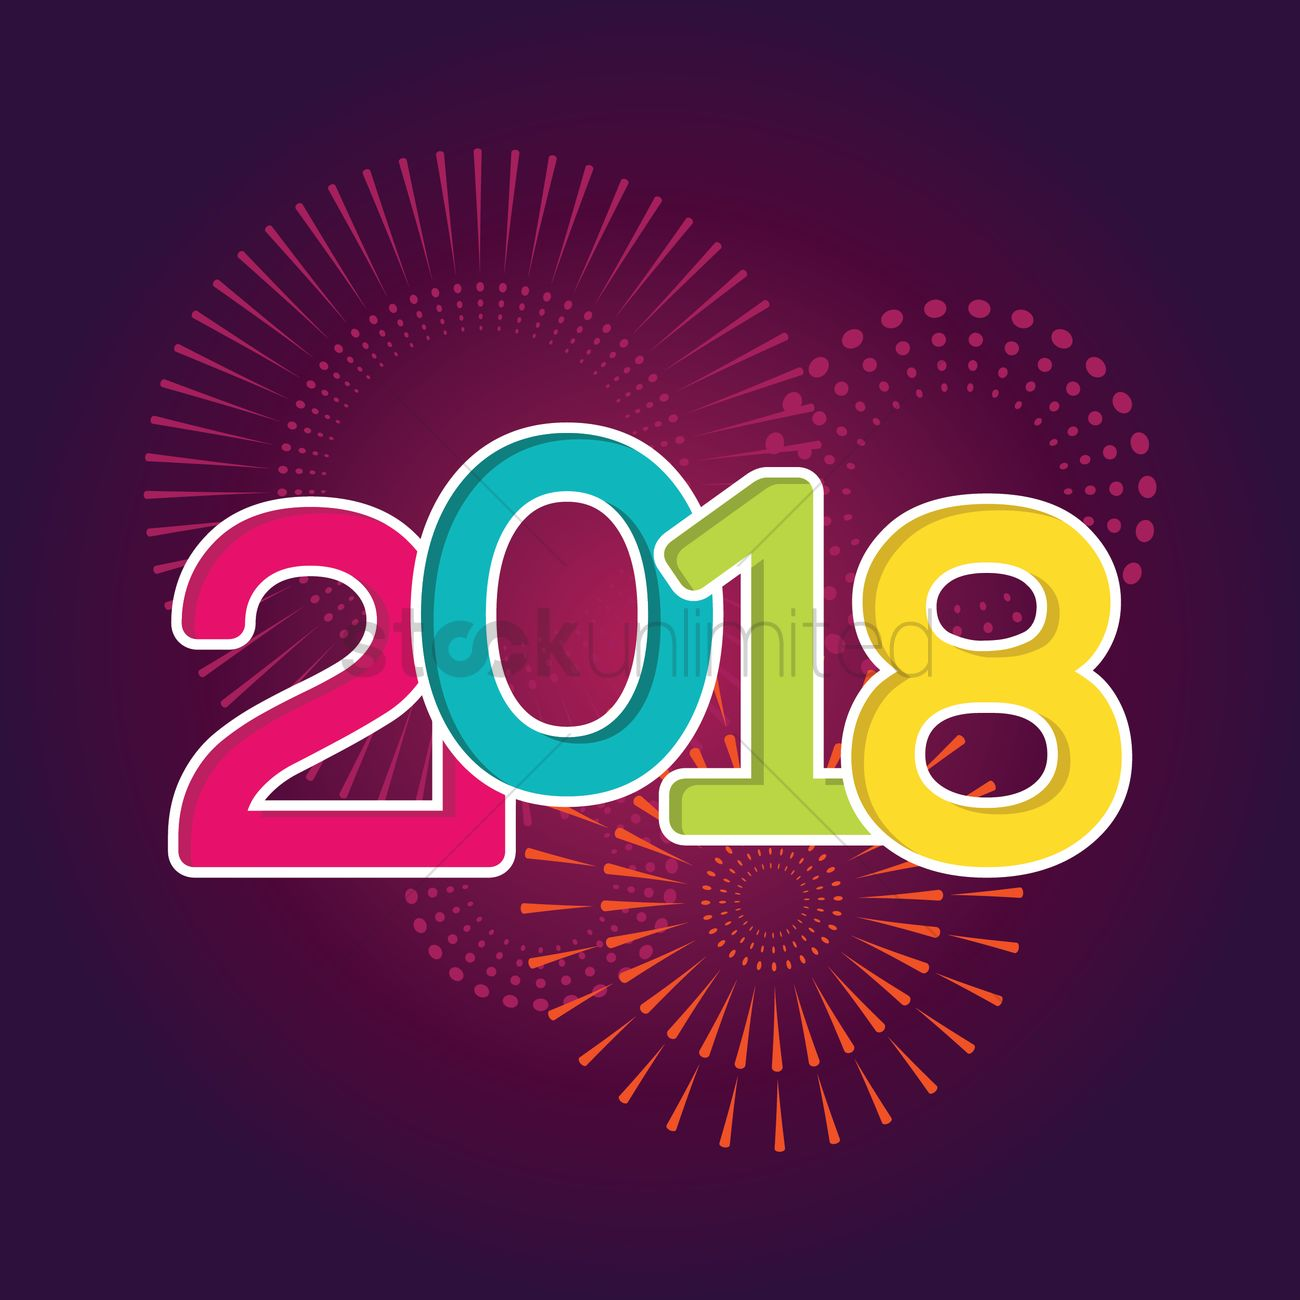 Happy New Year 2018 Vector Image 2078756 Stockunlimited